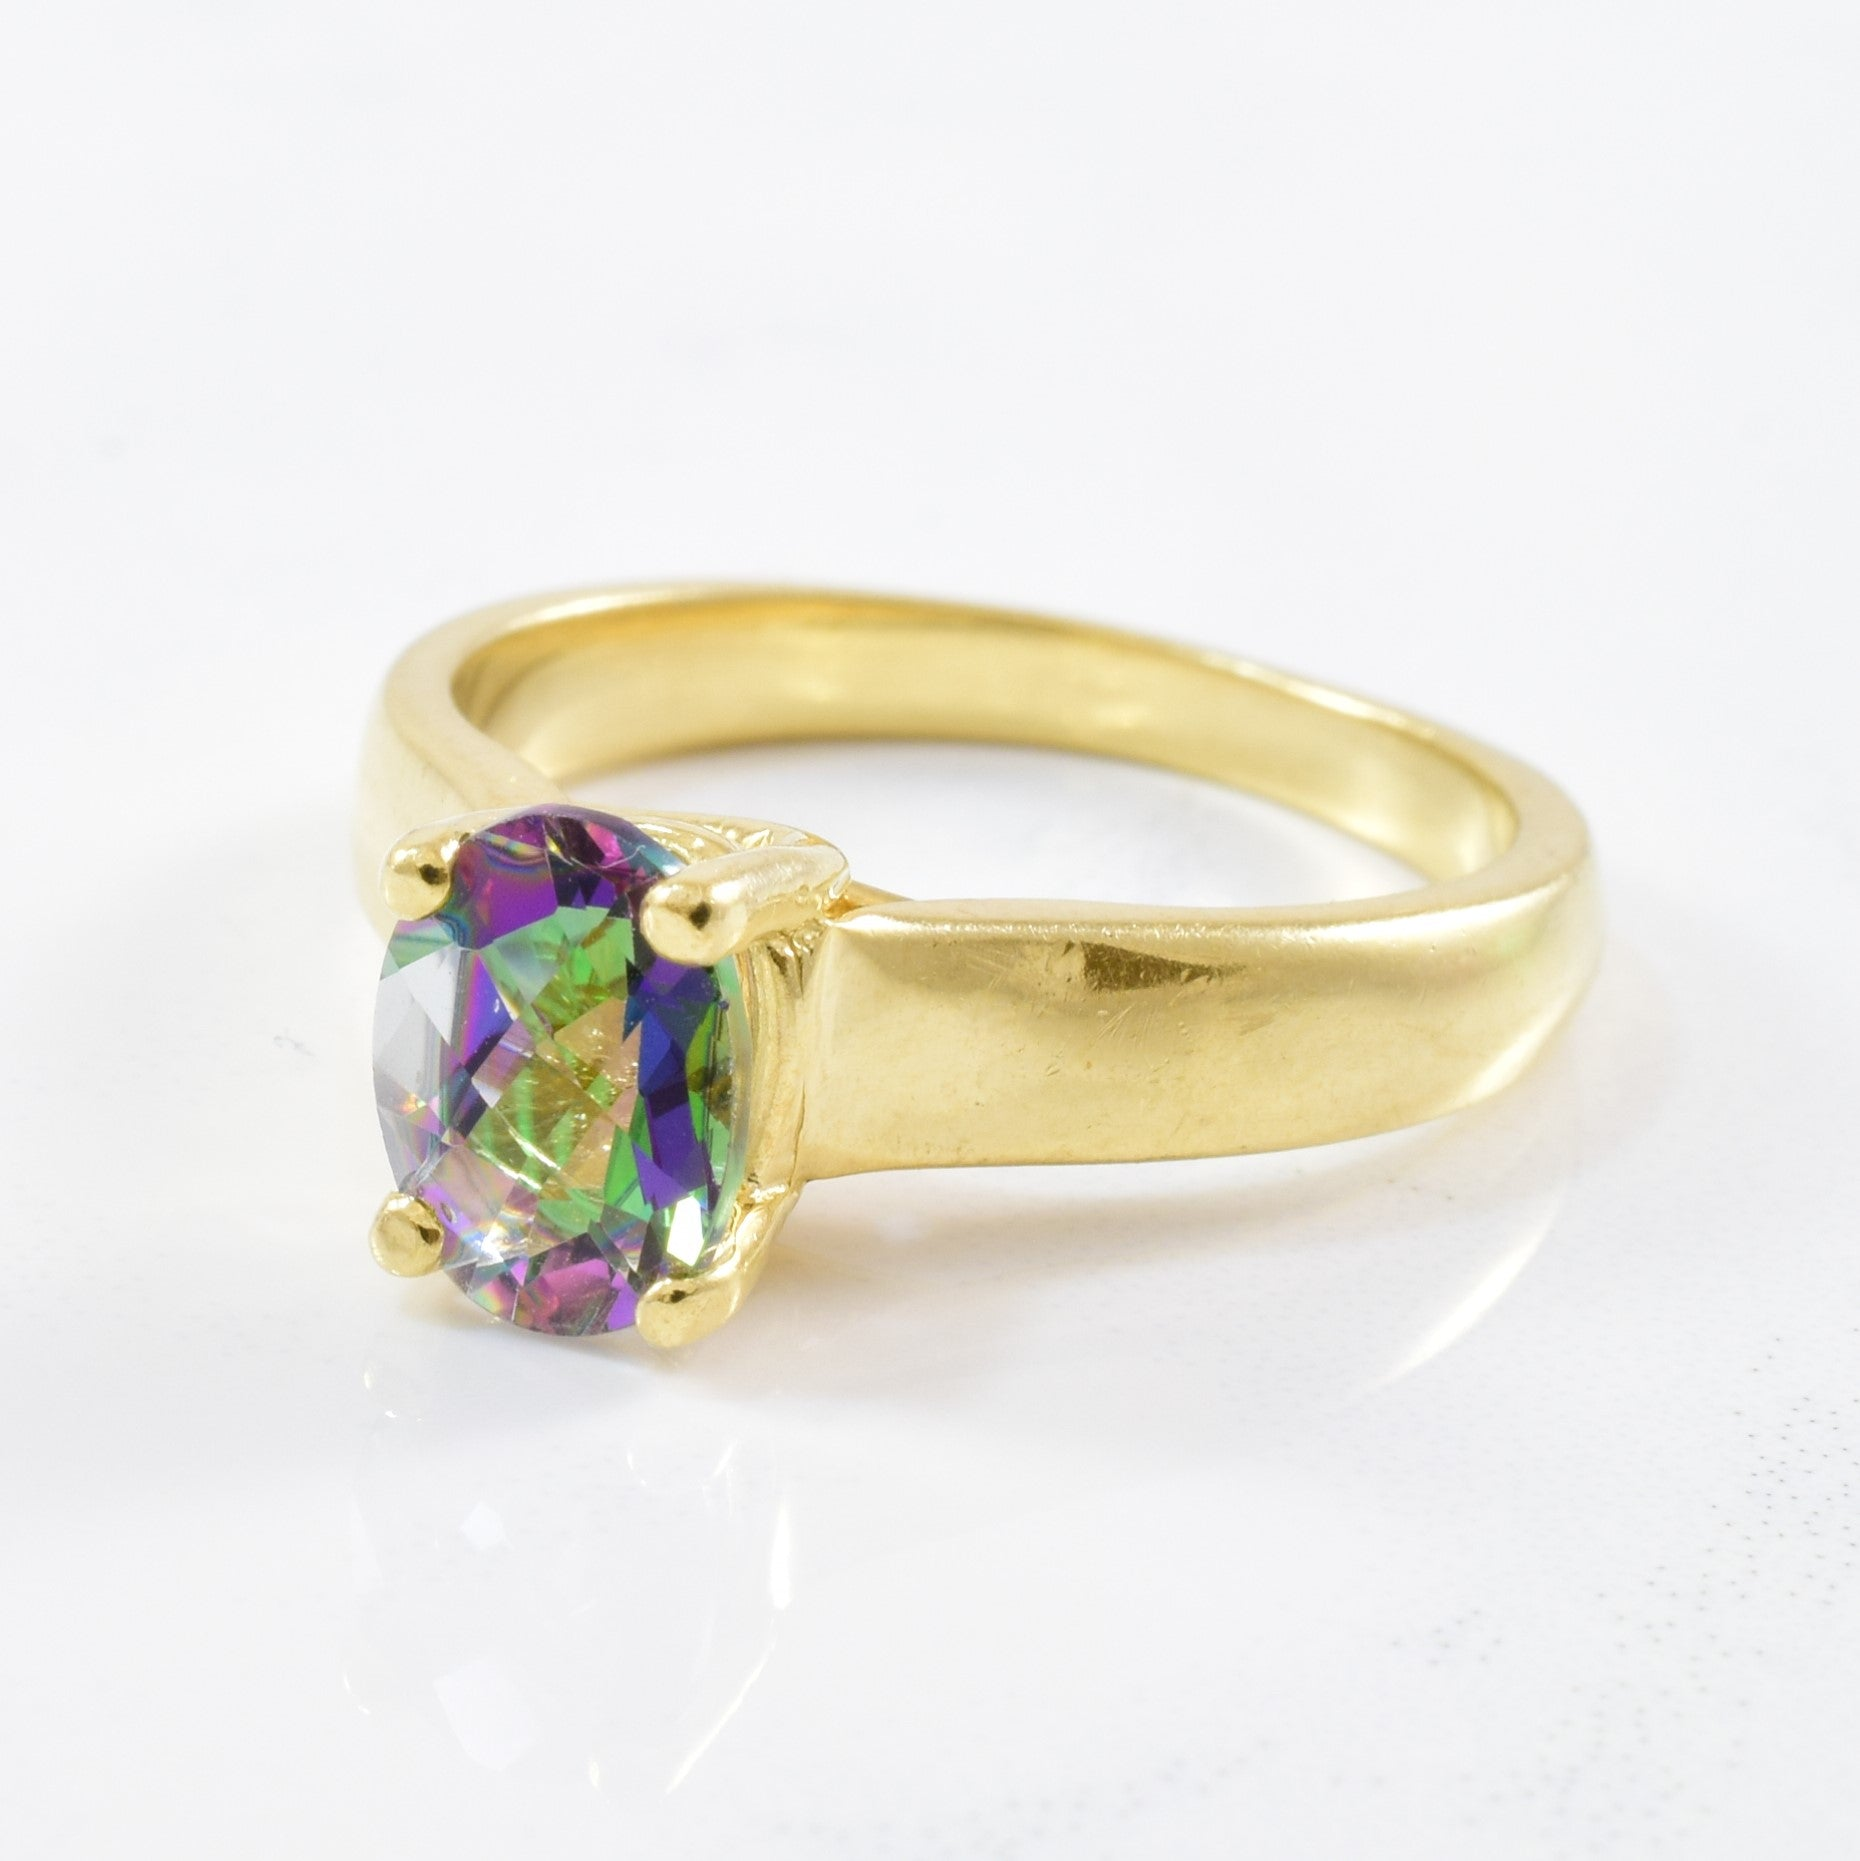 Oval Mystic Topaz Solitaire Ring | 1.35ct | SZ 7 |